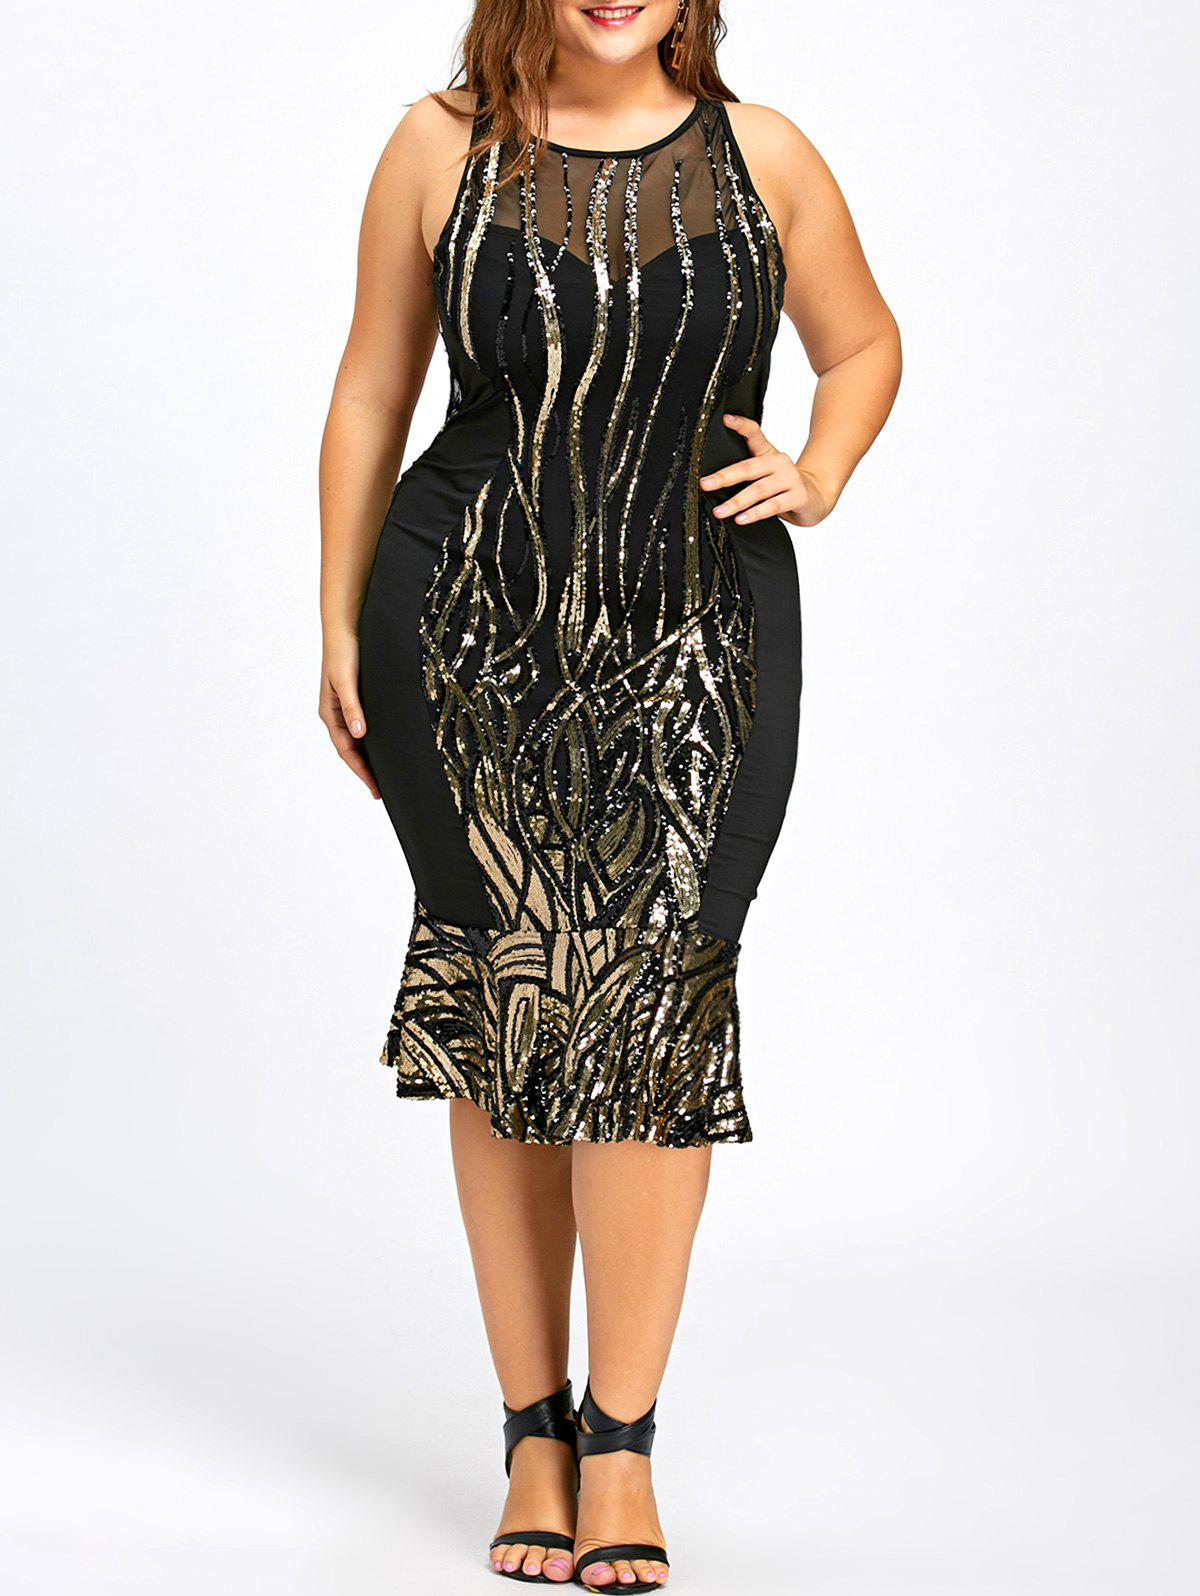 Mermaid Sequin Plus Size Party Bodycon DressWOMEN<br><br>Size: 3XL; Color: BLACK; Style: Cute; Material: Polyester,Spandex; Silhouette: Trumpet/Mermaid; Dresses Length: Mid-Calf; Neckline: Jewel Neck; Sleeve Length: Sleeveless; Embellishment: Sequins; Pattern Type: Solid; With Belt: No; Season: Fall,Spring; Weight: 0.4880kg; Package Contents: 1 x Dress;